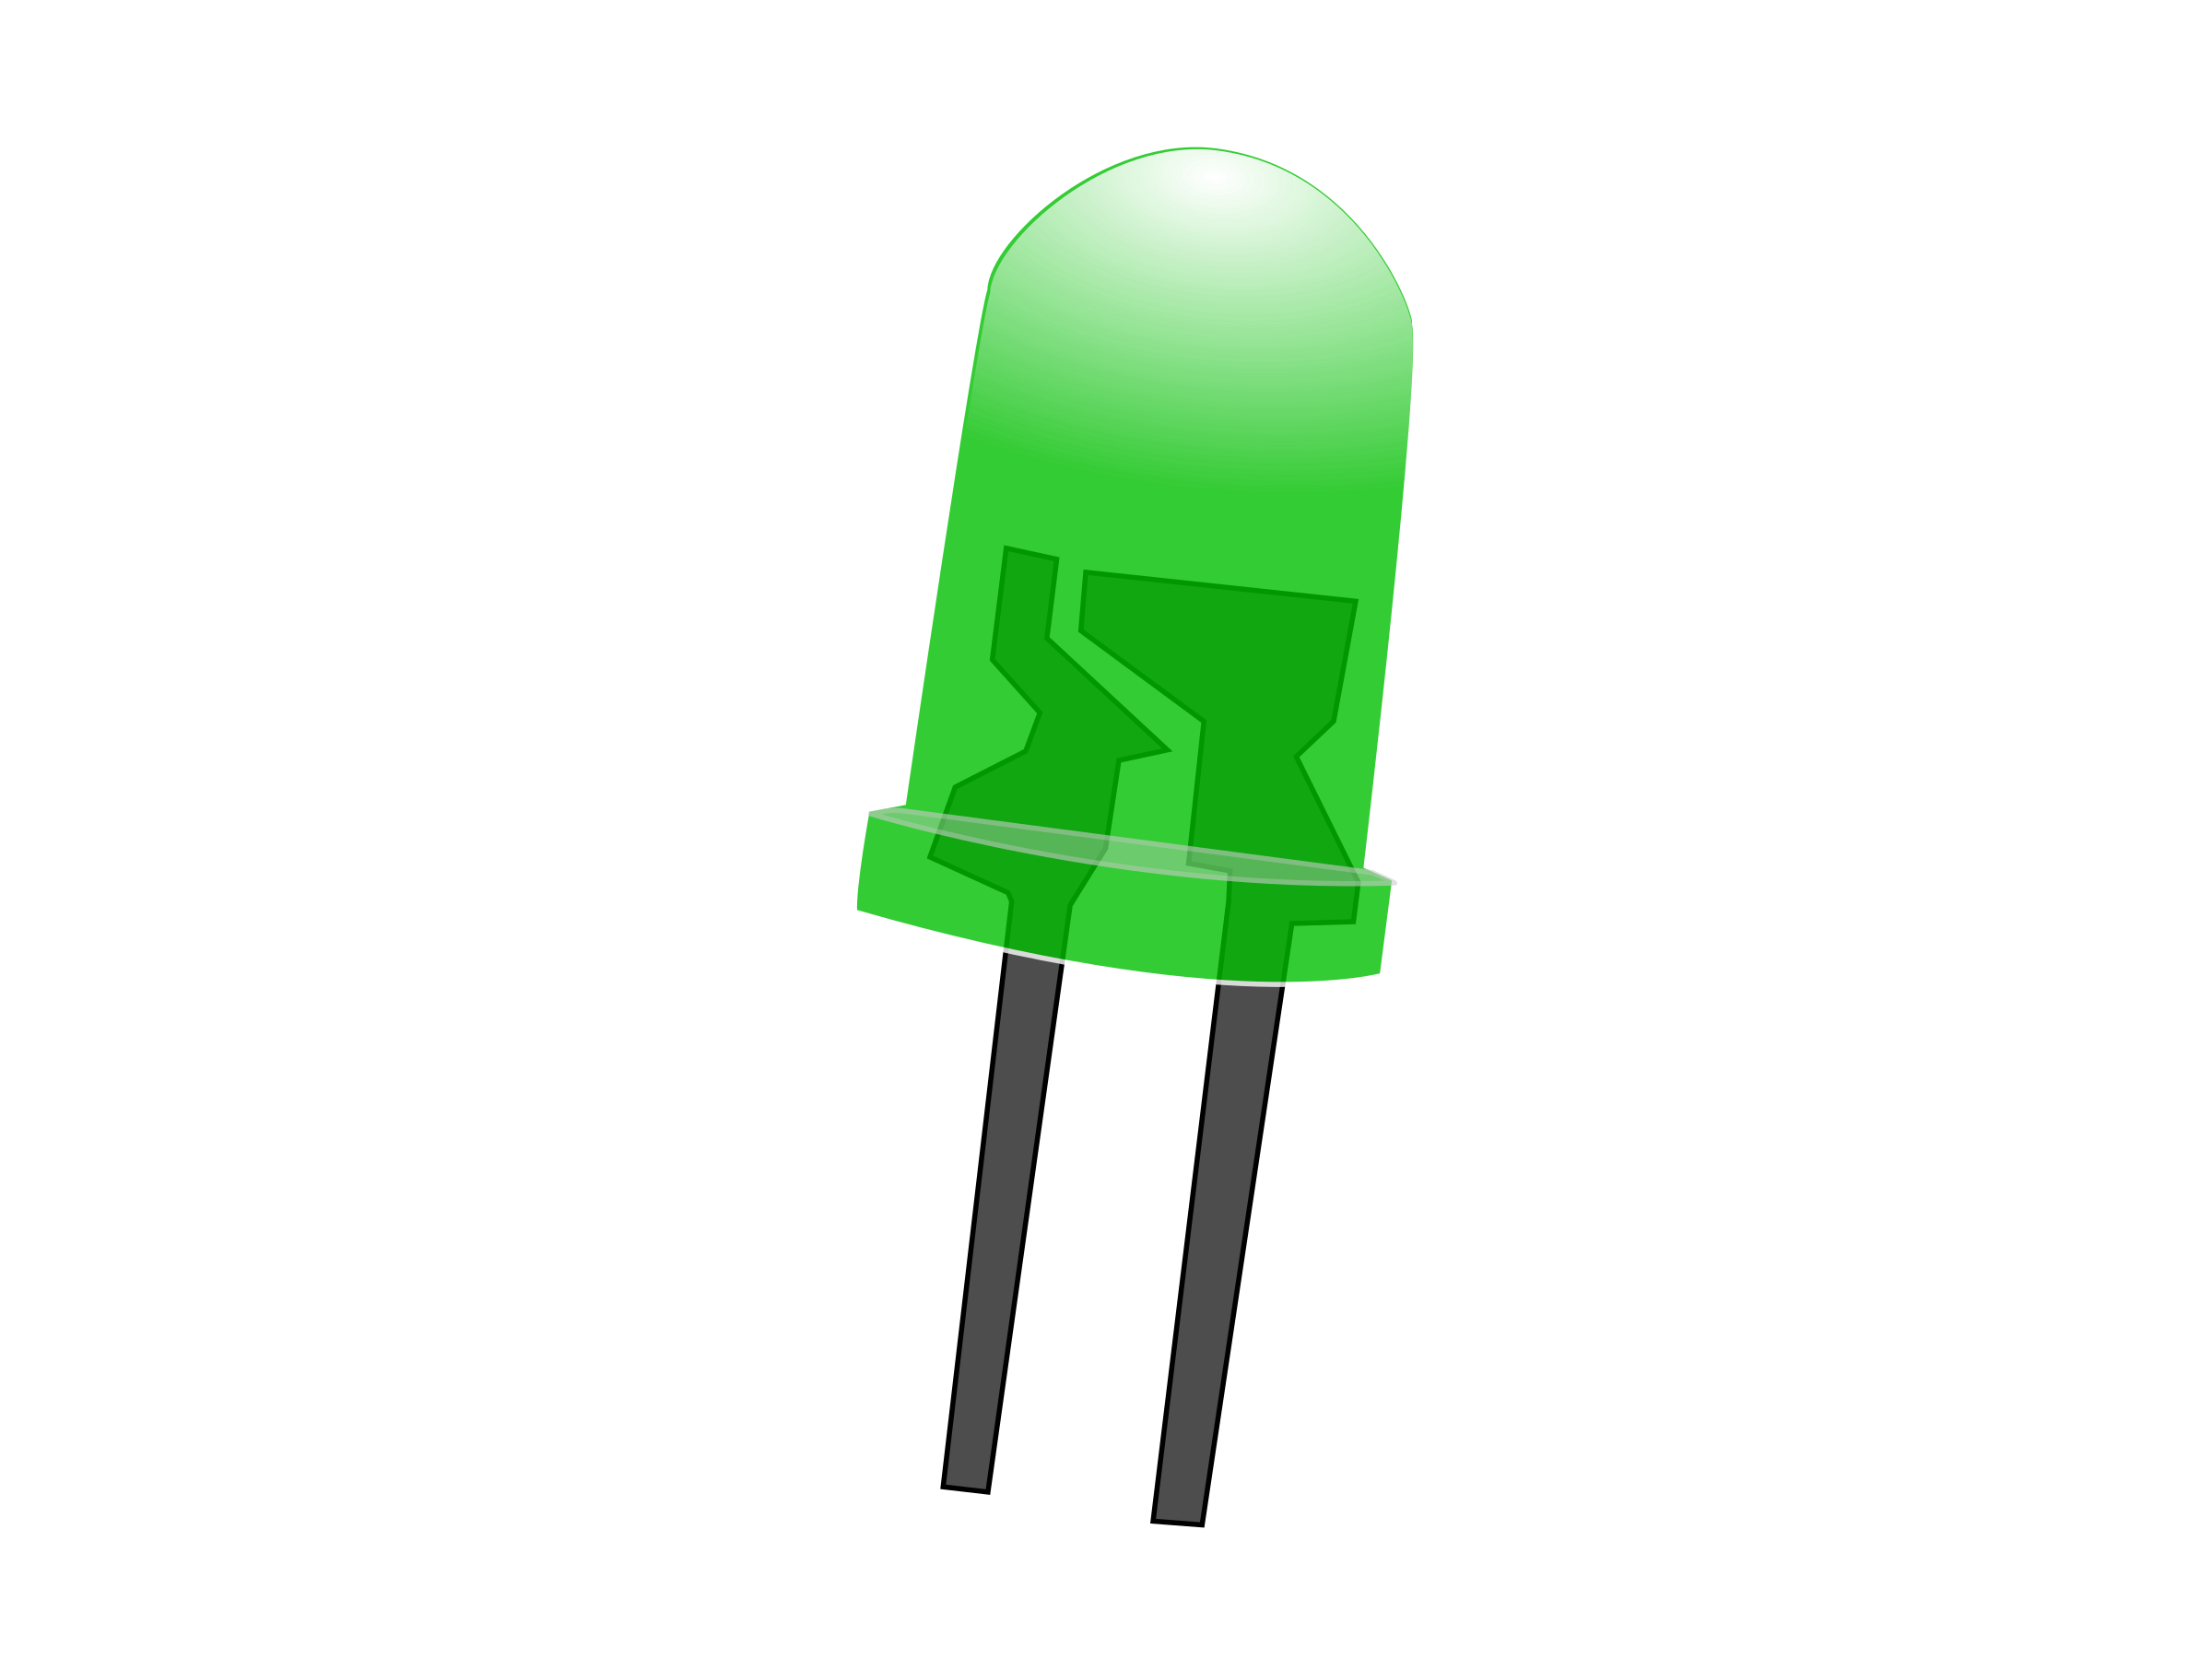 Green LED Lamp (Off) by howardthegeek